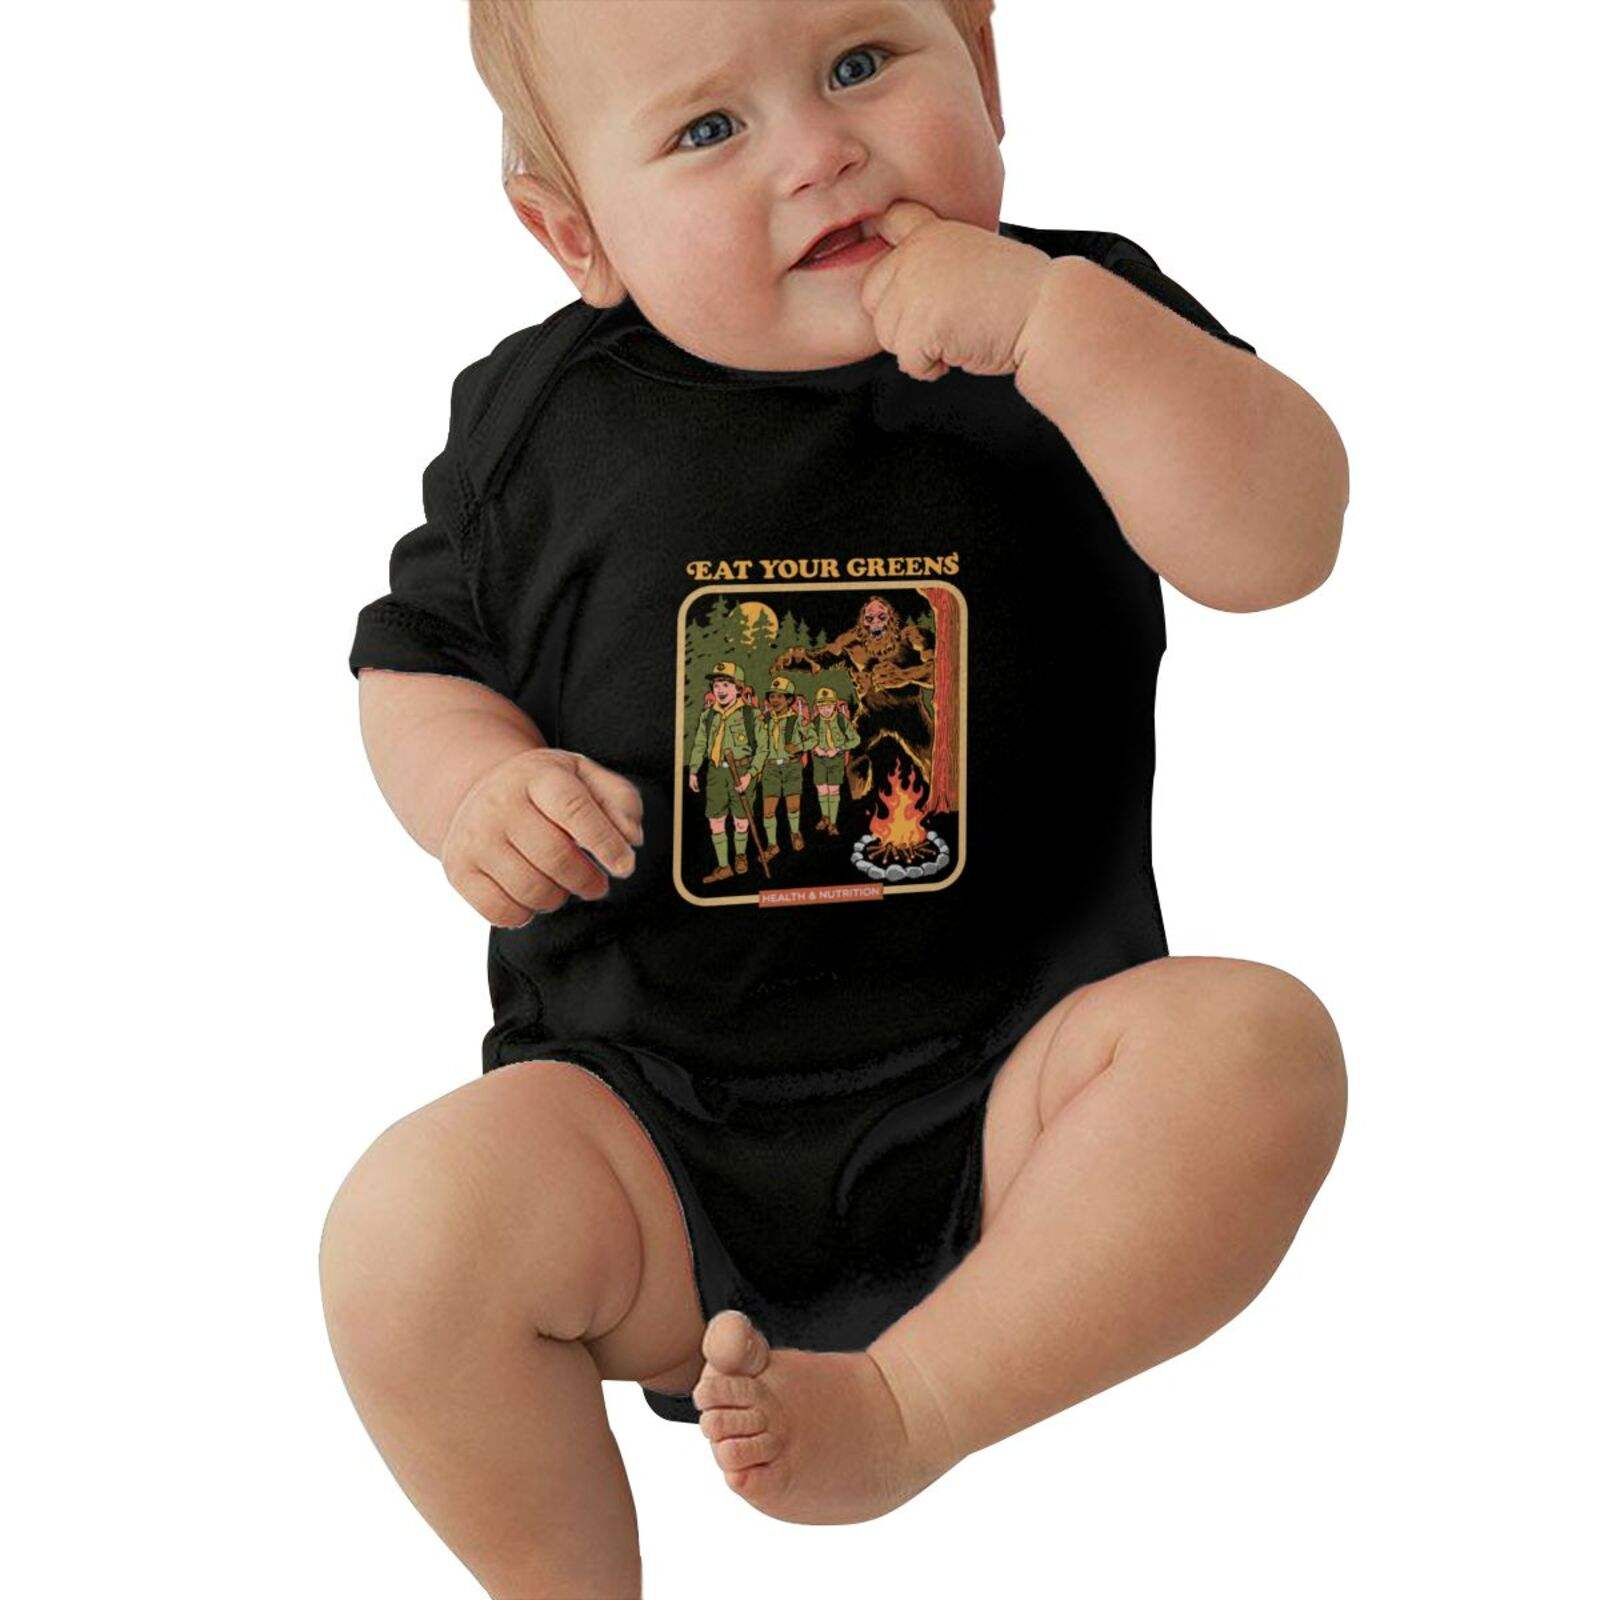 2021 Luxury Baby Boys Girls Rompers Eat Your Greens Demon Anime Manga Horror Movie TV Friends Ropa pour newborn bodysuit set bod